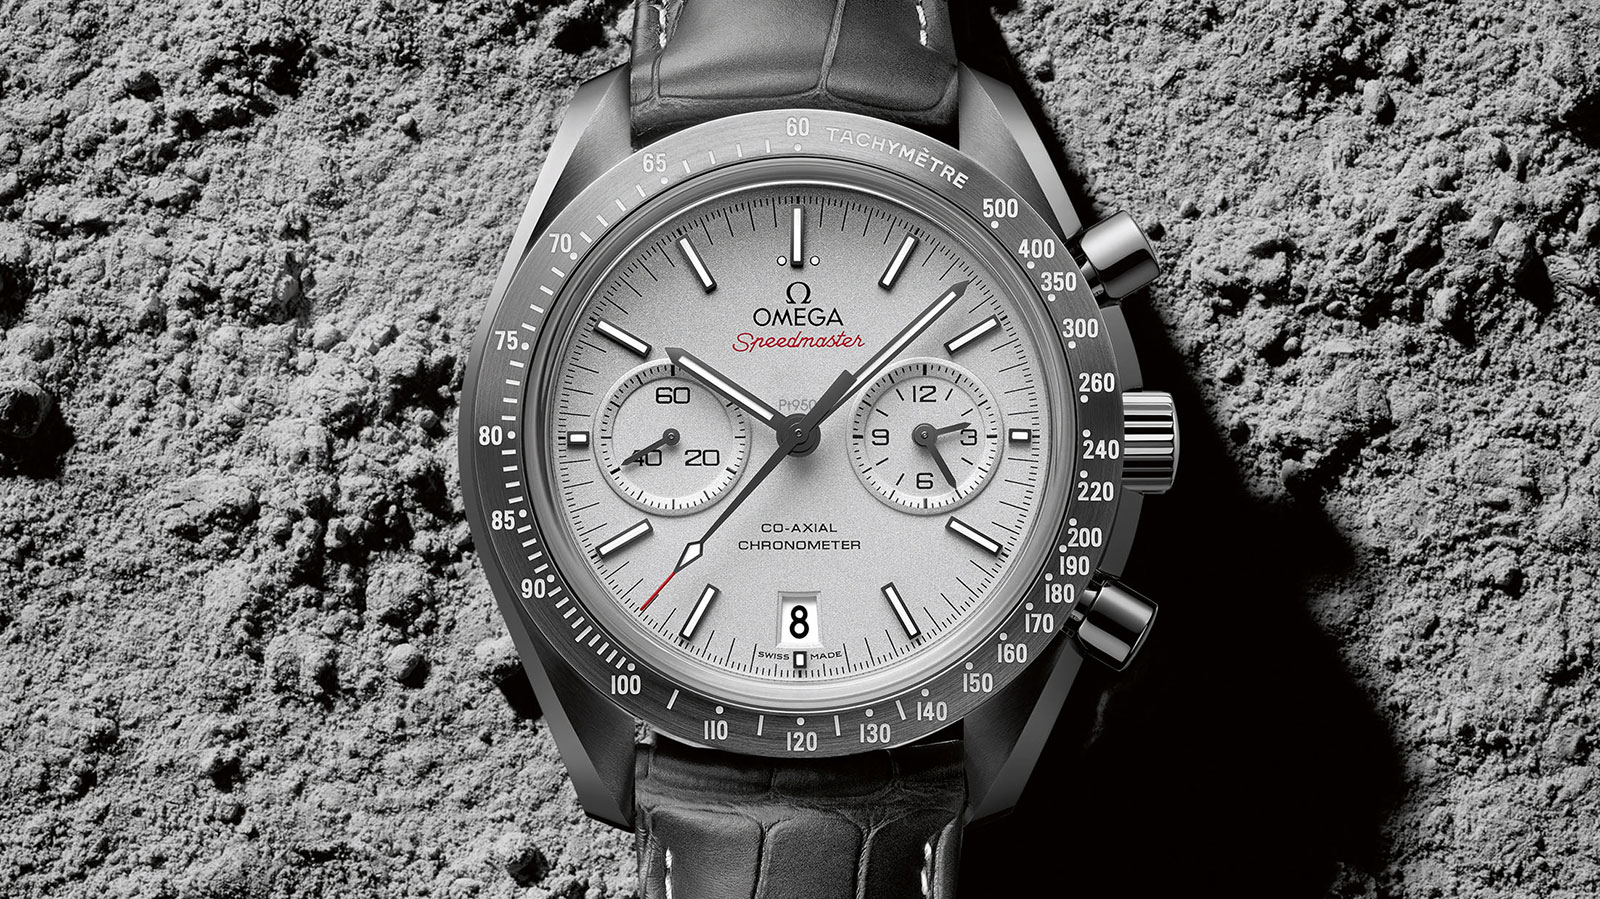 Speedmaster ムーンウォッチ Moonwatch Omega Co‑Axial Chronograph 44.25 mm ウォッチ - 311.93.44.51.99.001